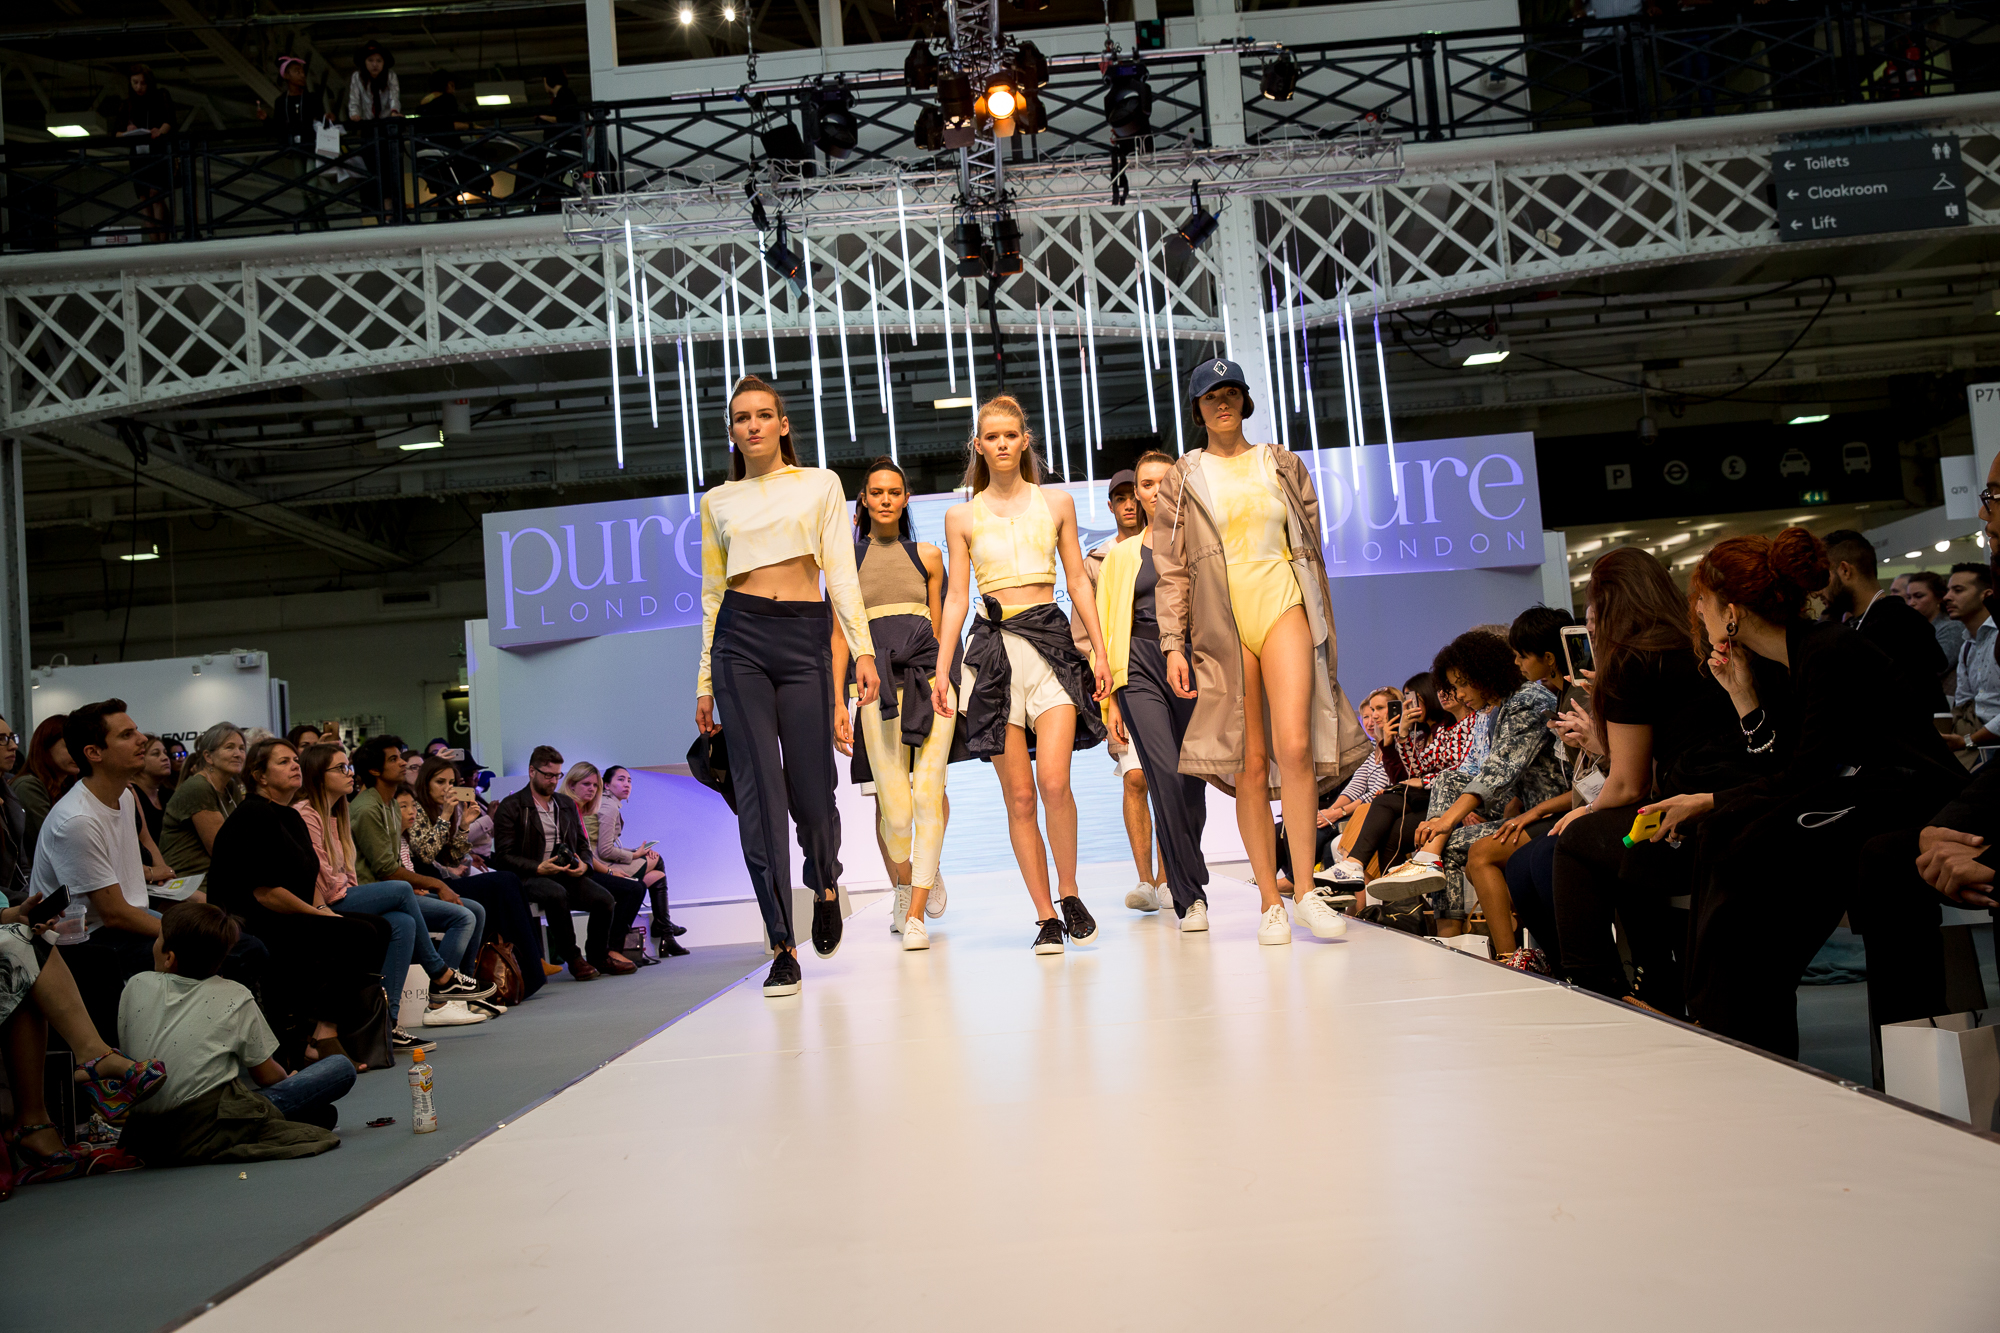 Pure_London_Catwalks5551